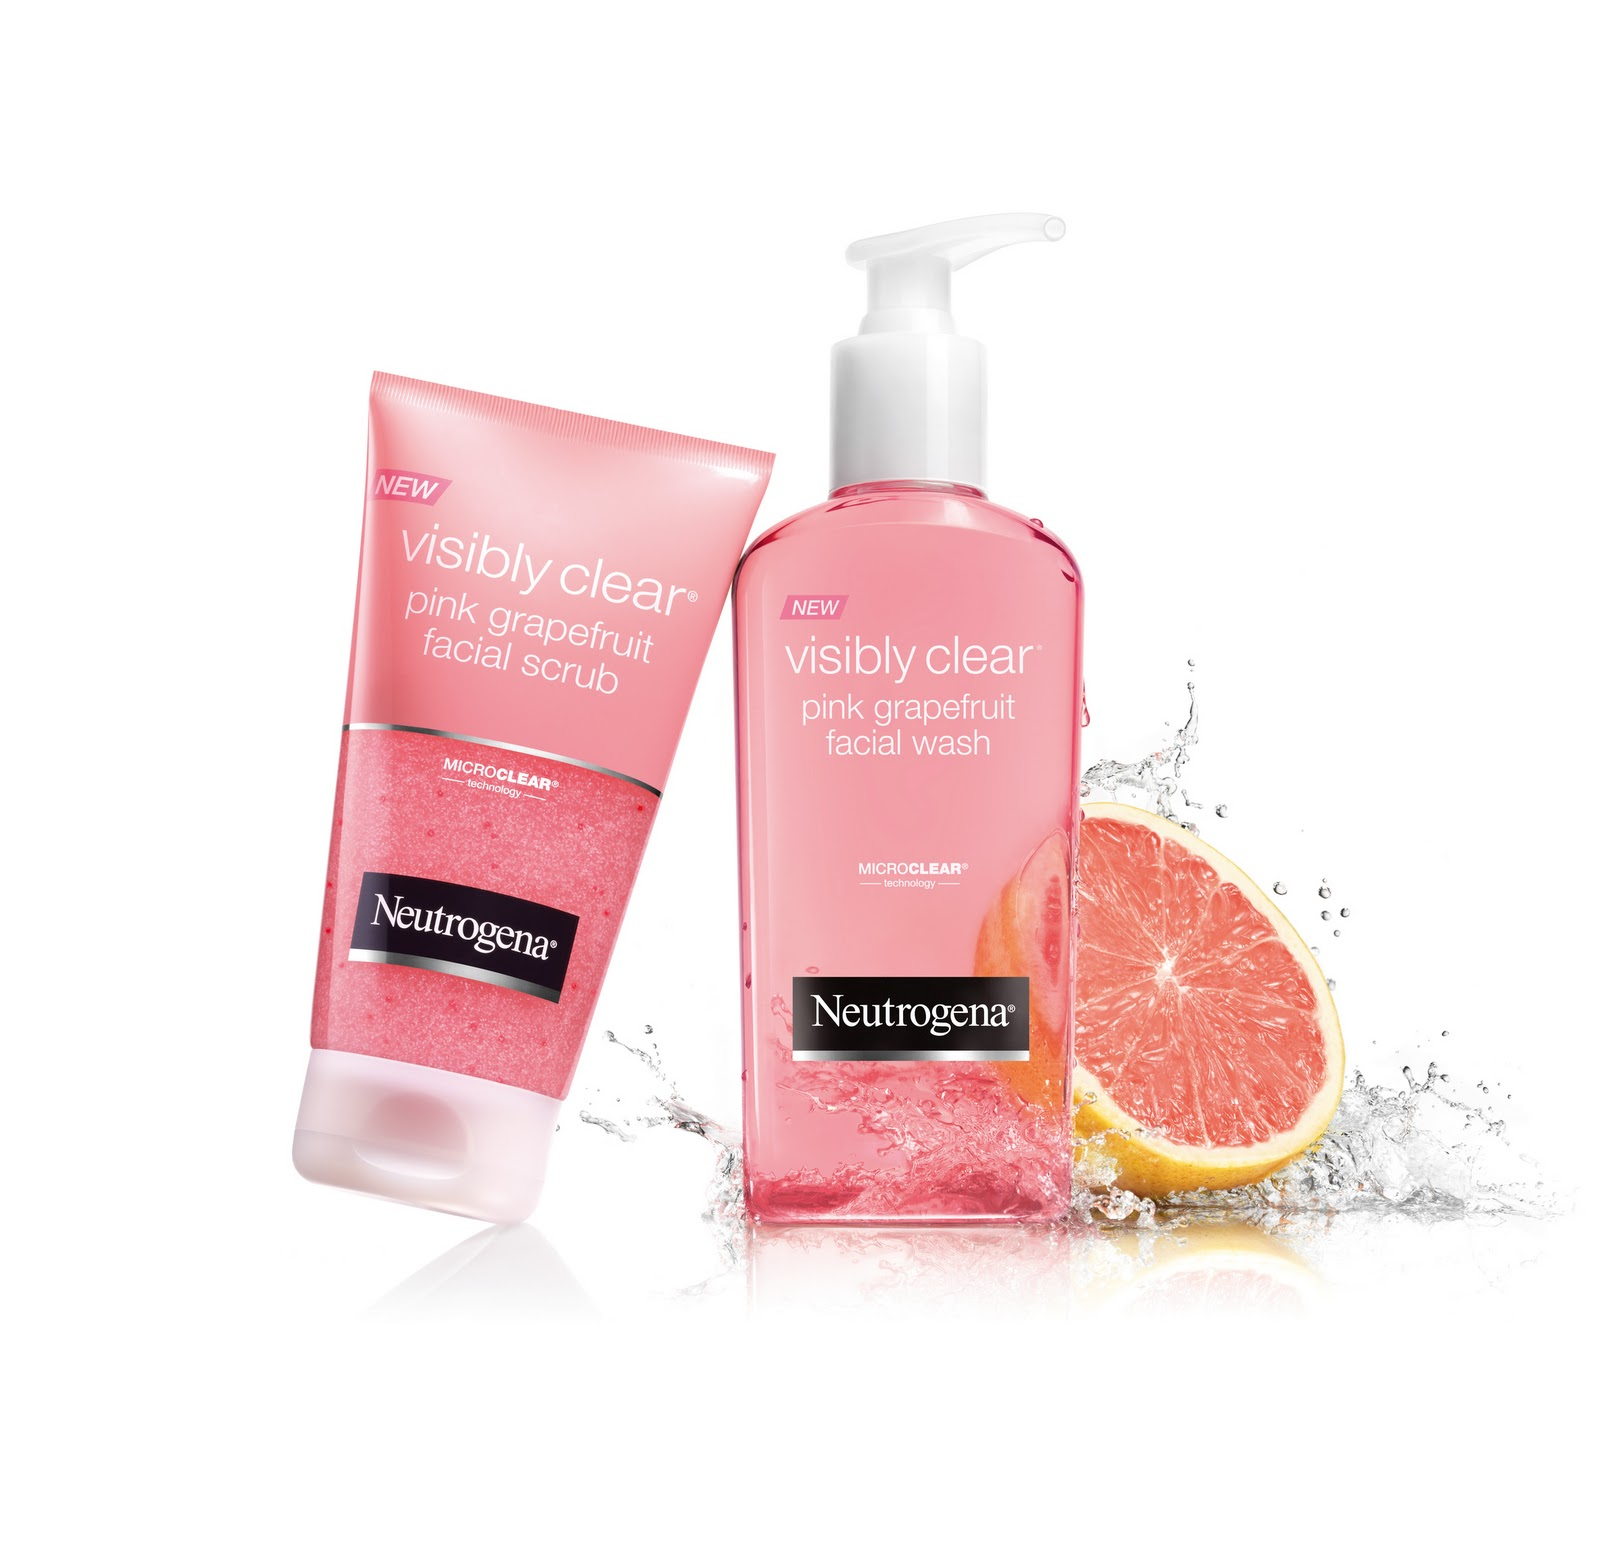 Given To Distracting Others: Neutrogena Visibly Clear Pink